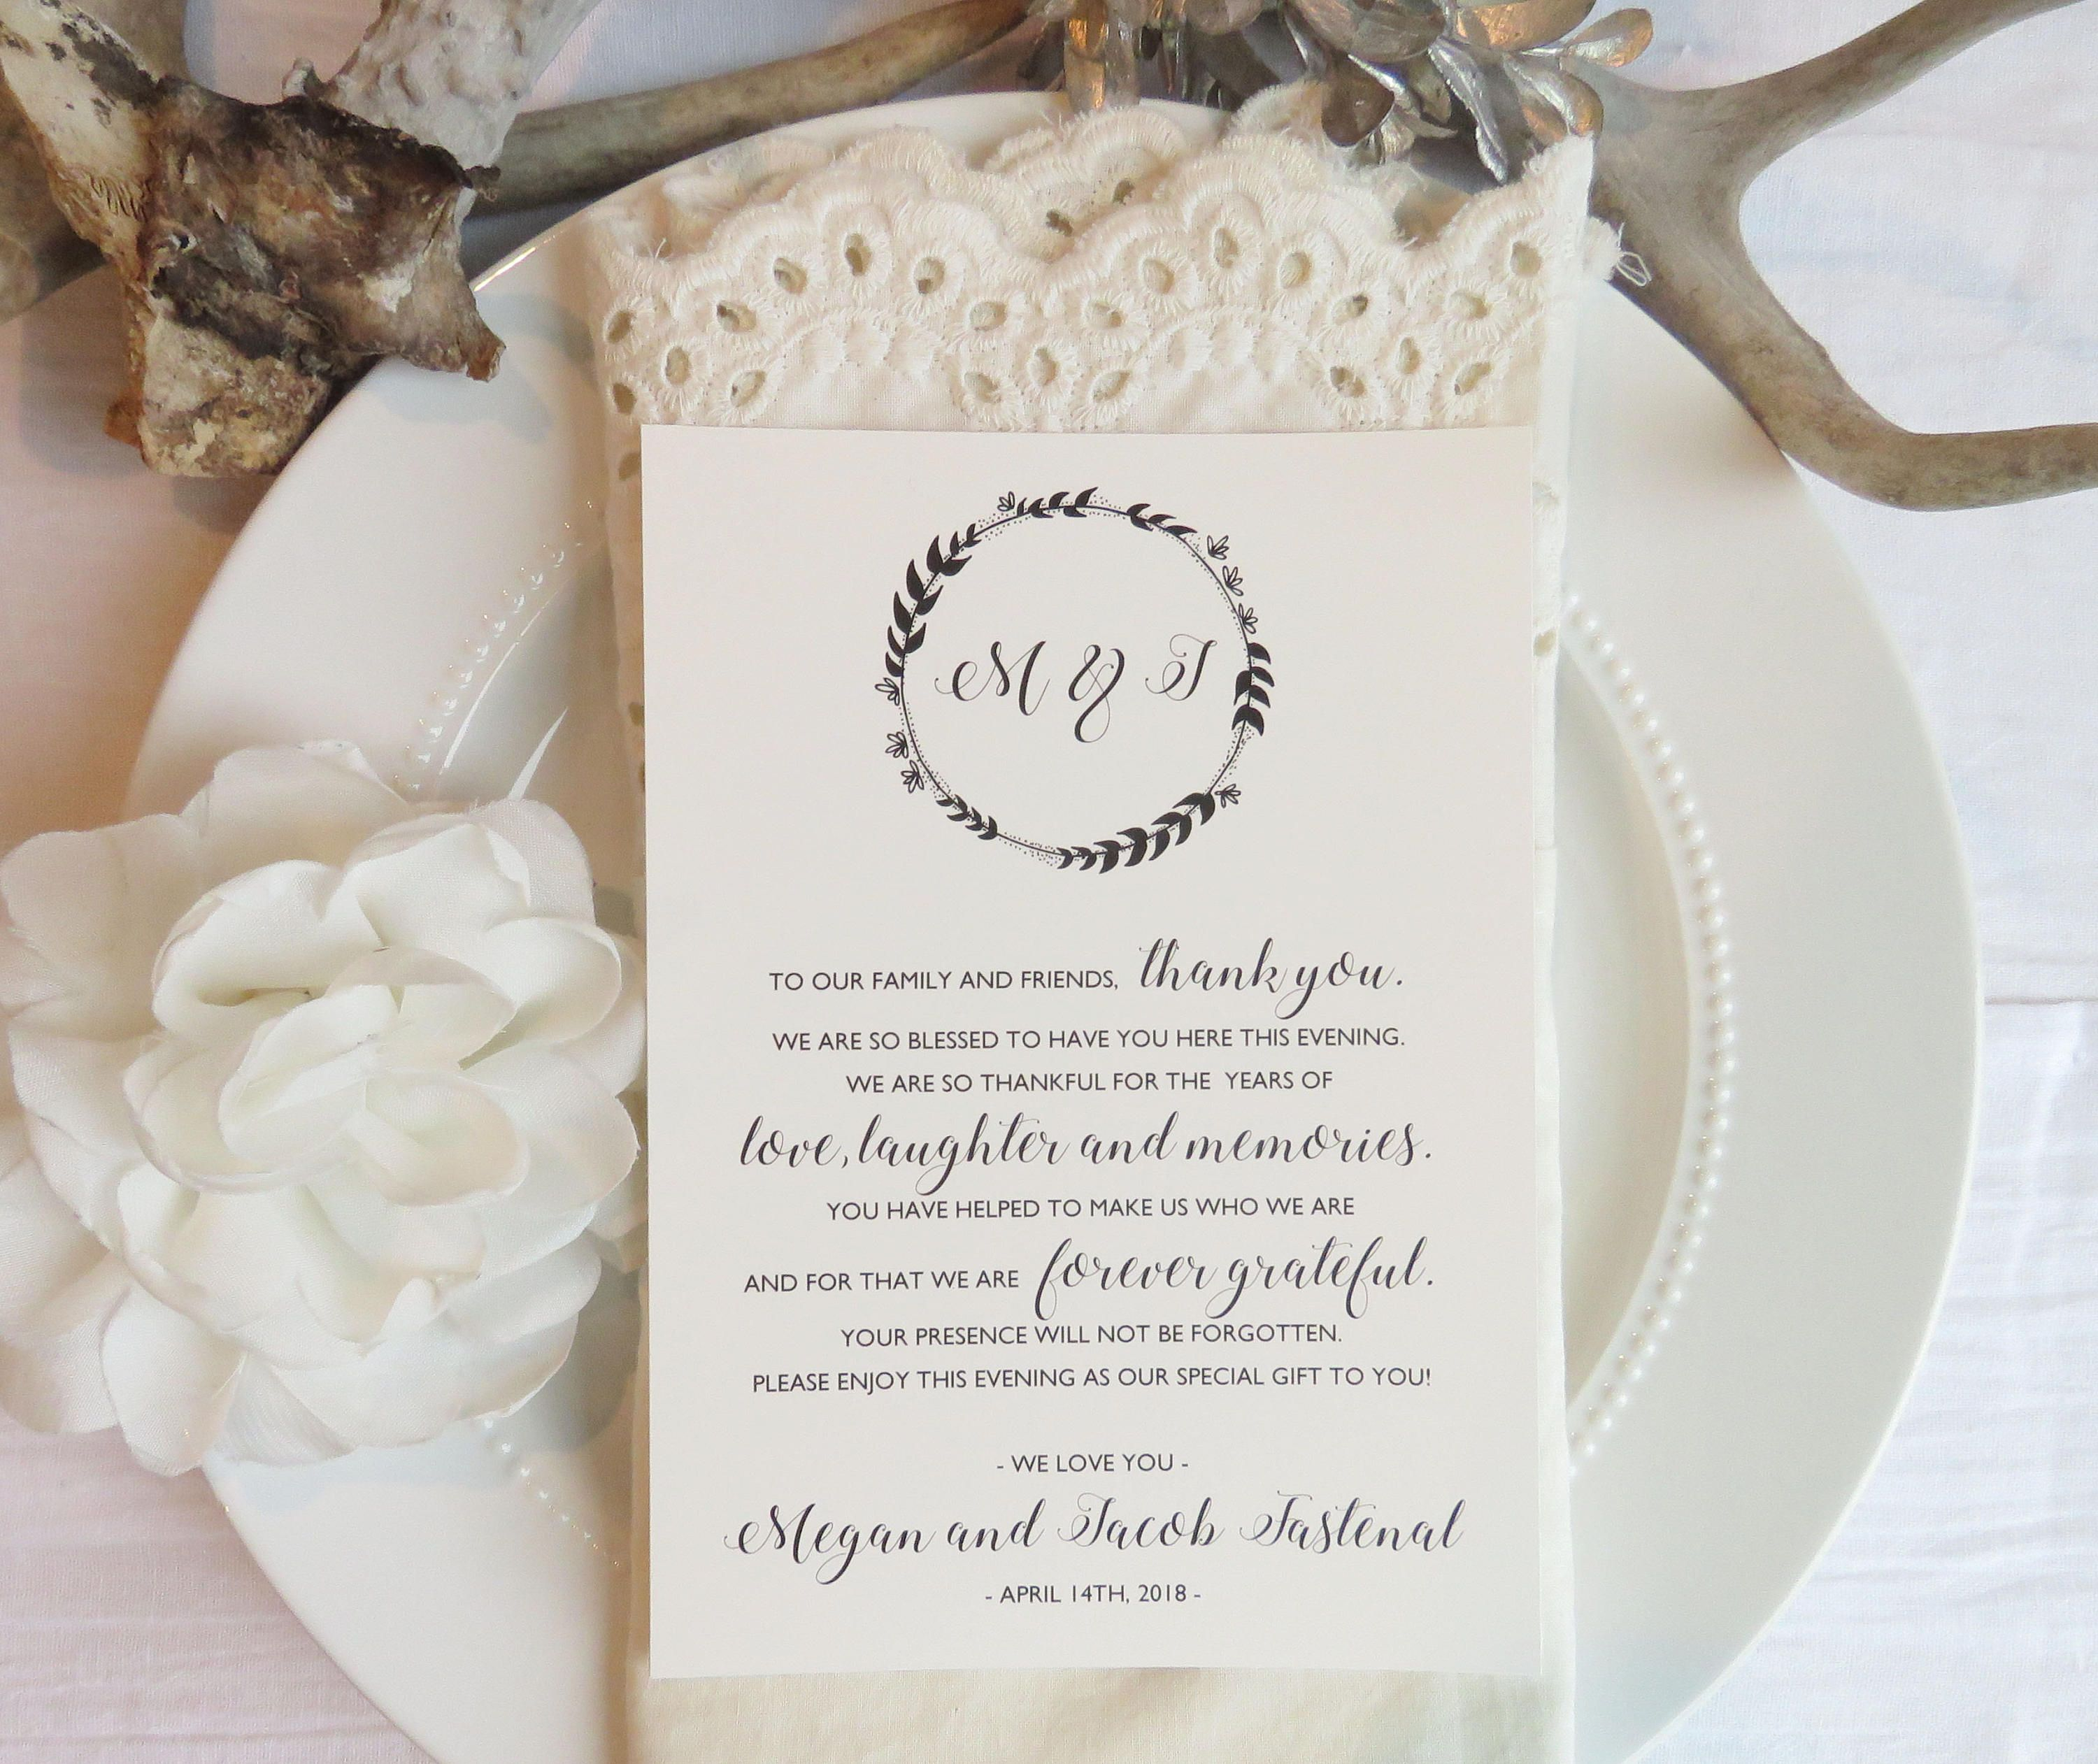 002 Dreaded Thank You Note For Wedding Guest Template High Def  CardFull